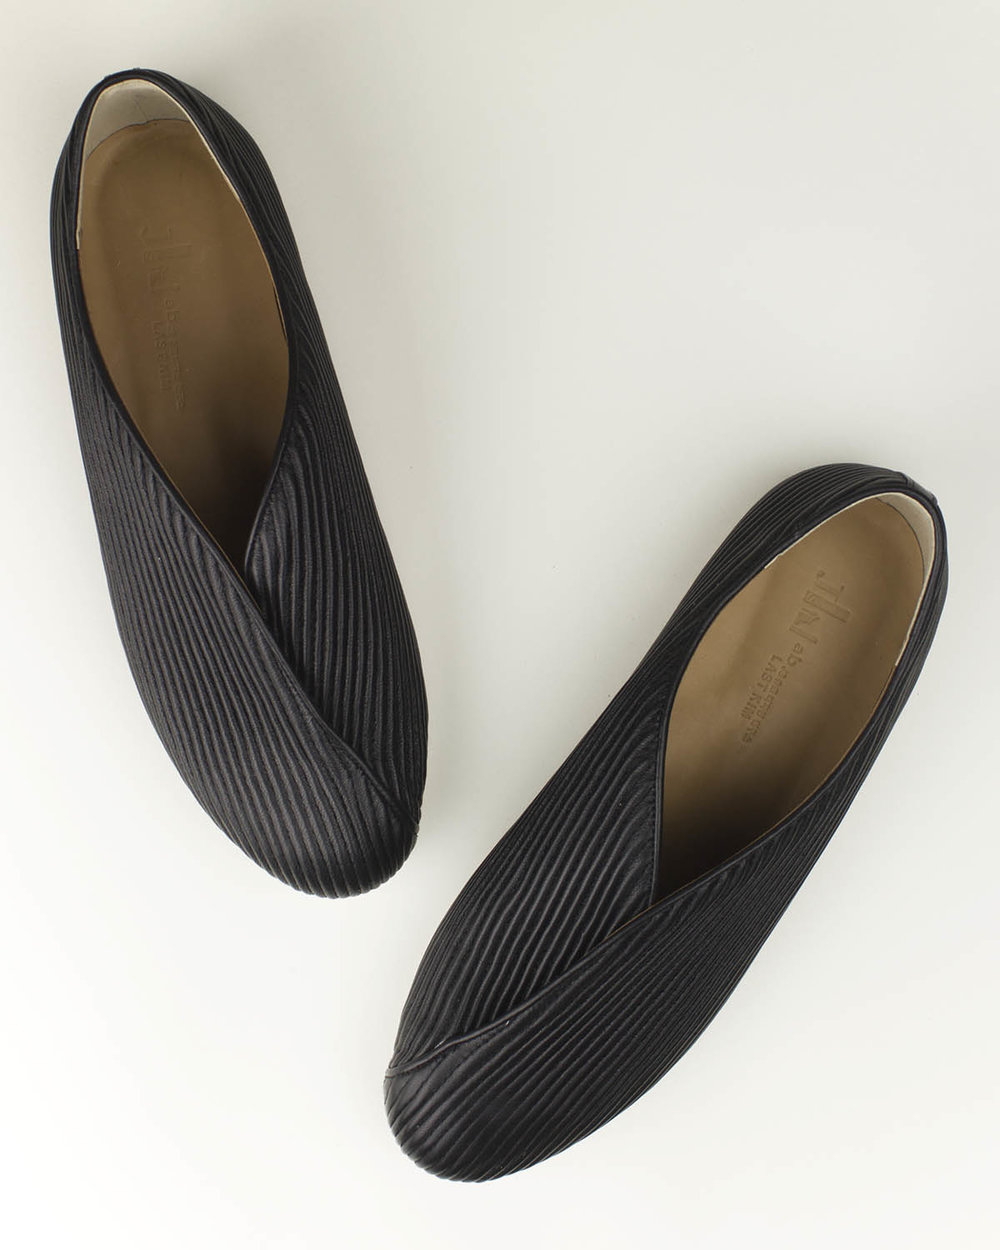 corie humble shoe design collection seoul korea portfolio slipper